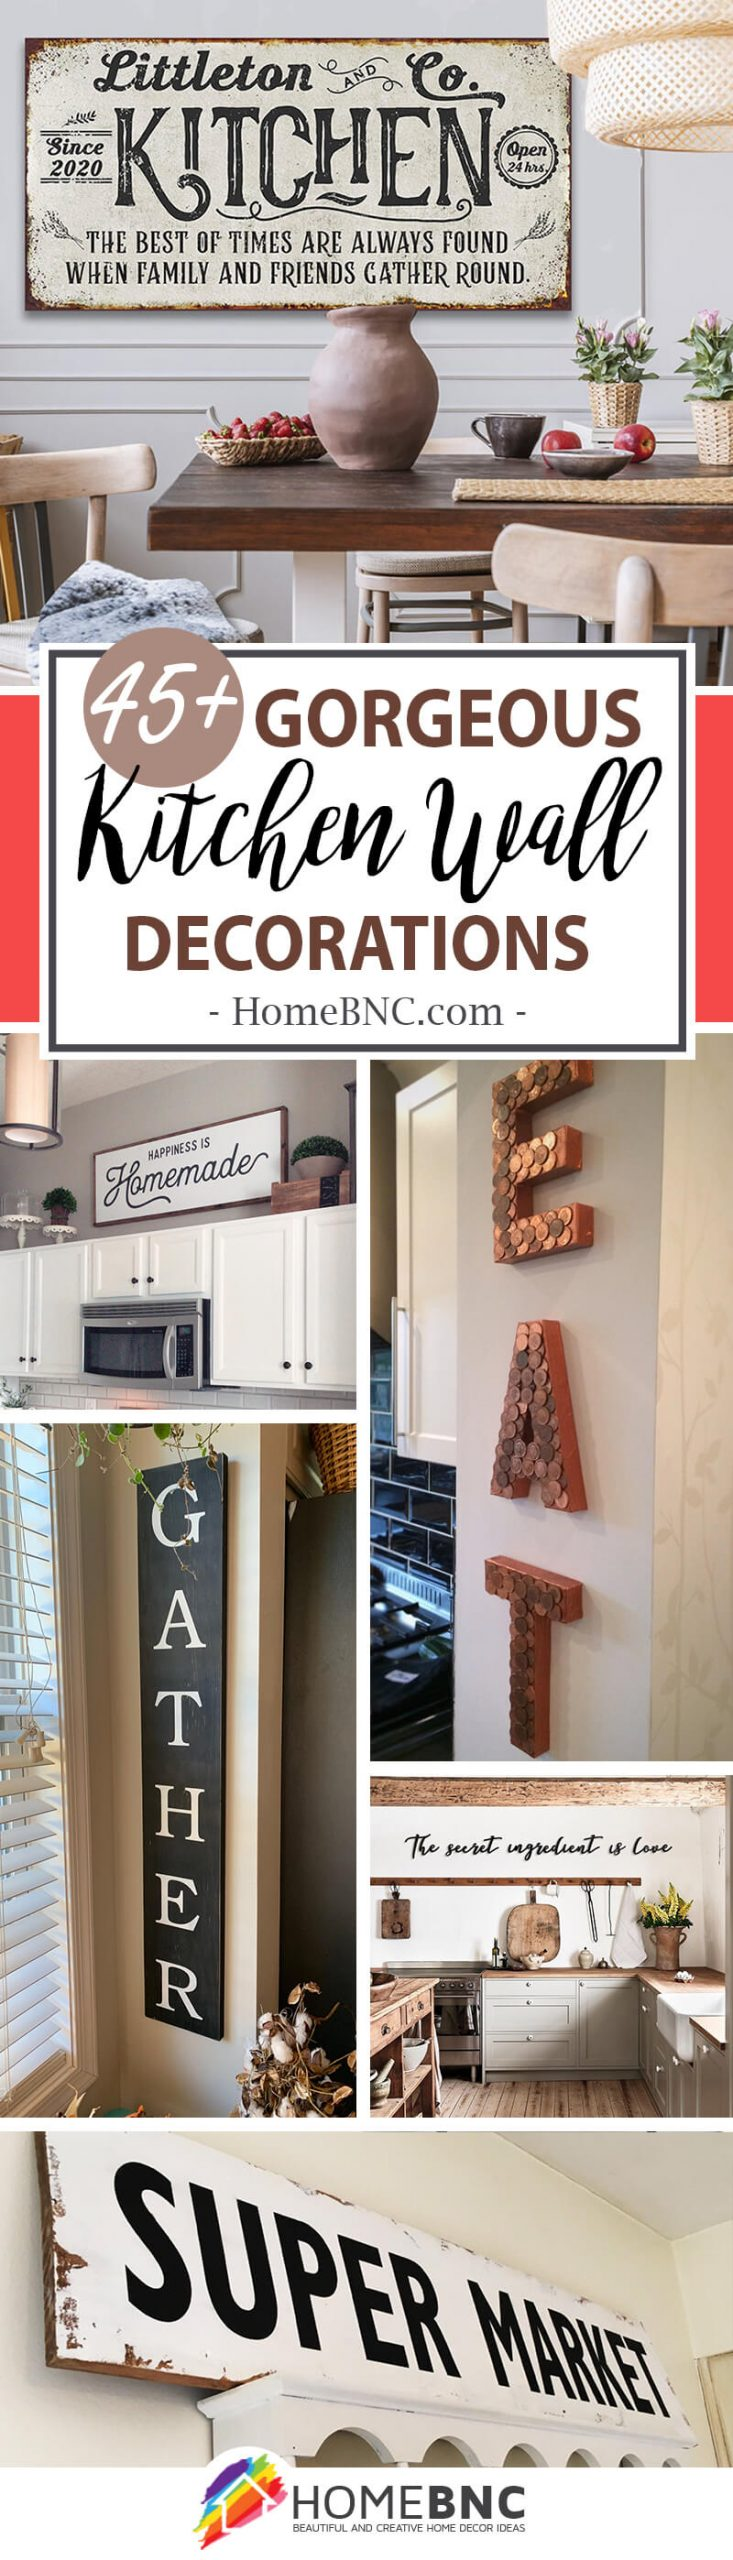 12+ Best Kitchen Wall Decor Ideas and Designs for 12